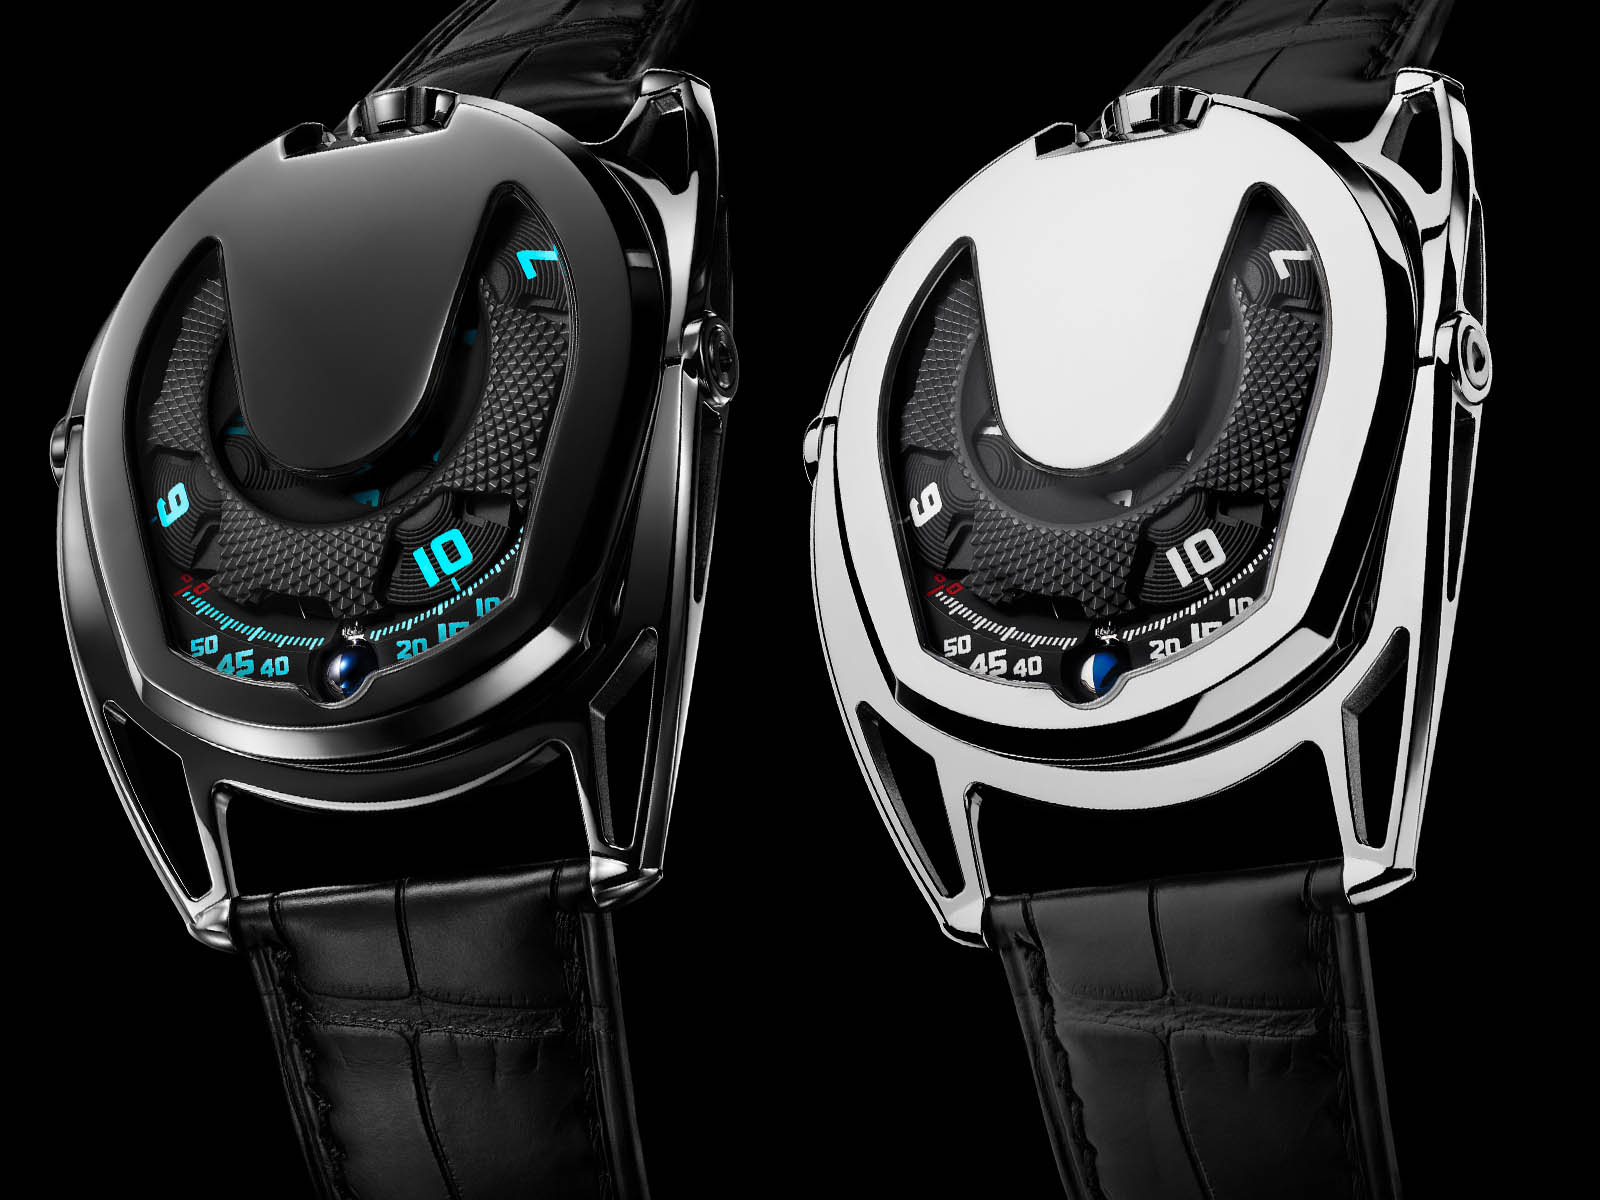 de-bethune-urwerk-only-watch-2019-1.jpg